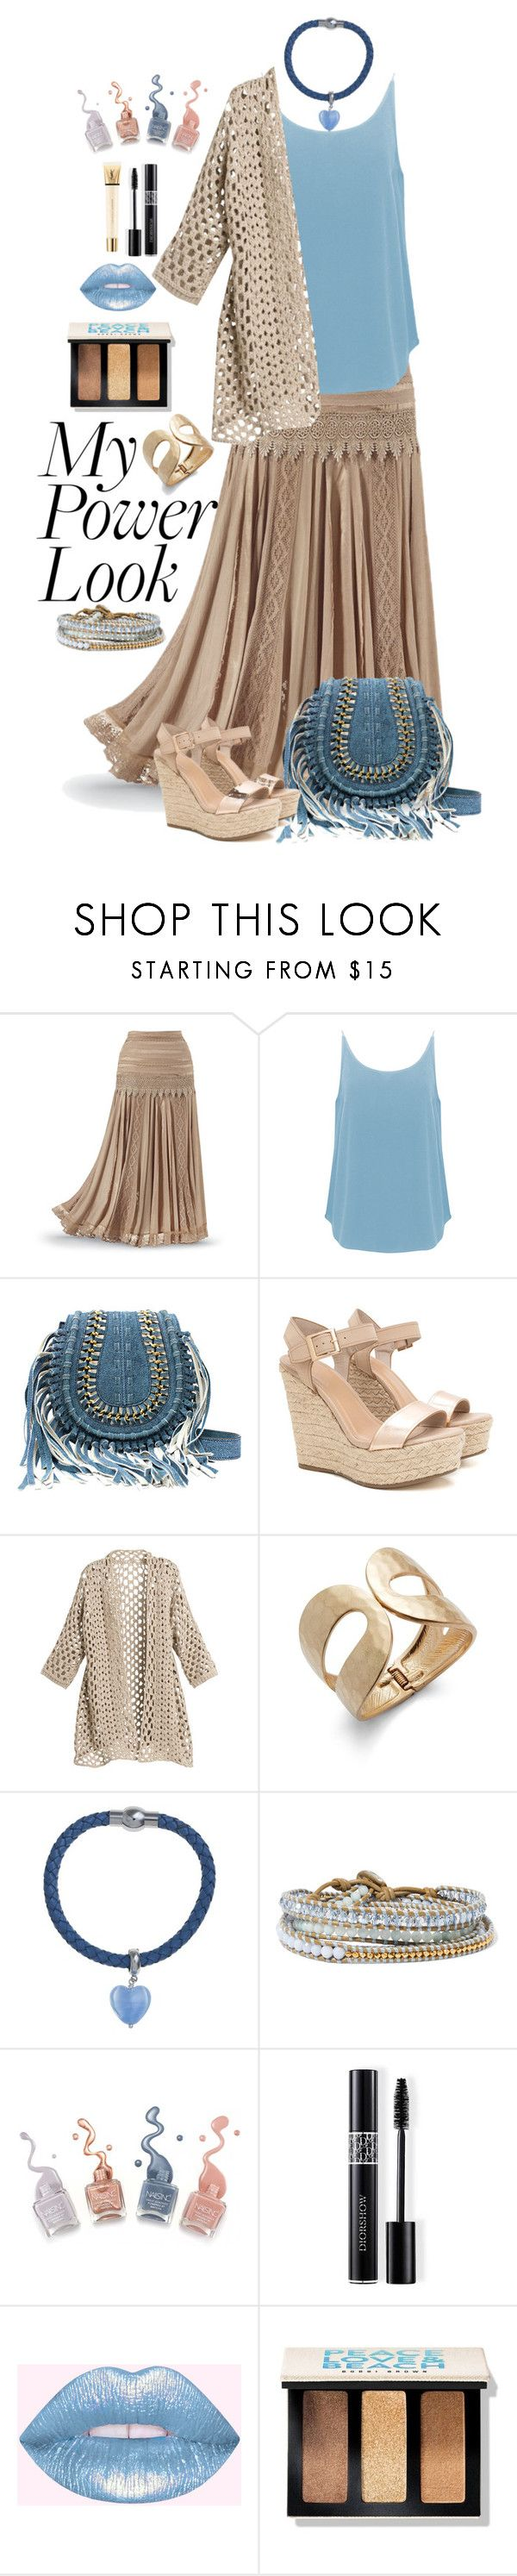 """What's Your Power Look?"" by sabine-713 ❤ liked on Polyvore featuring BA&SH, Catherine Malandrino, Martick, Chan Luu, Christian Dior, Bobbi Brown Cosmetics and Yves Saint Laurent"